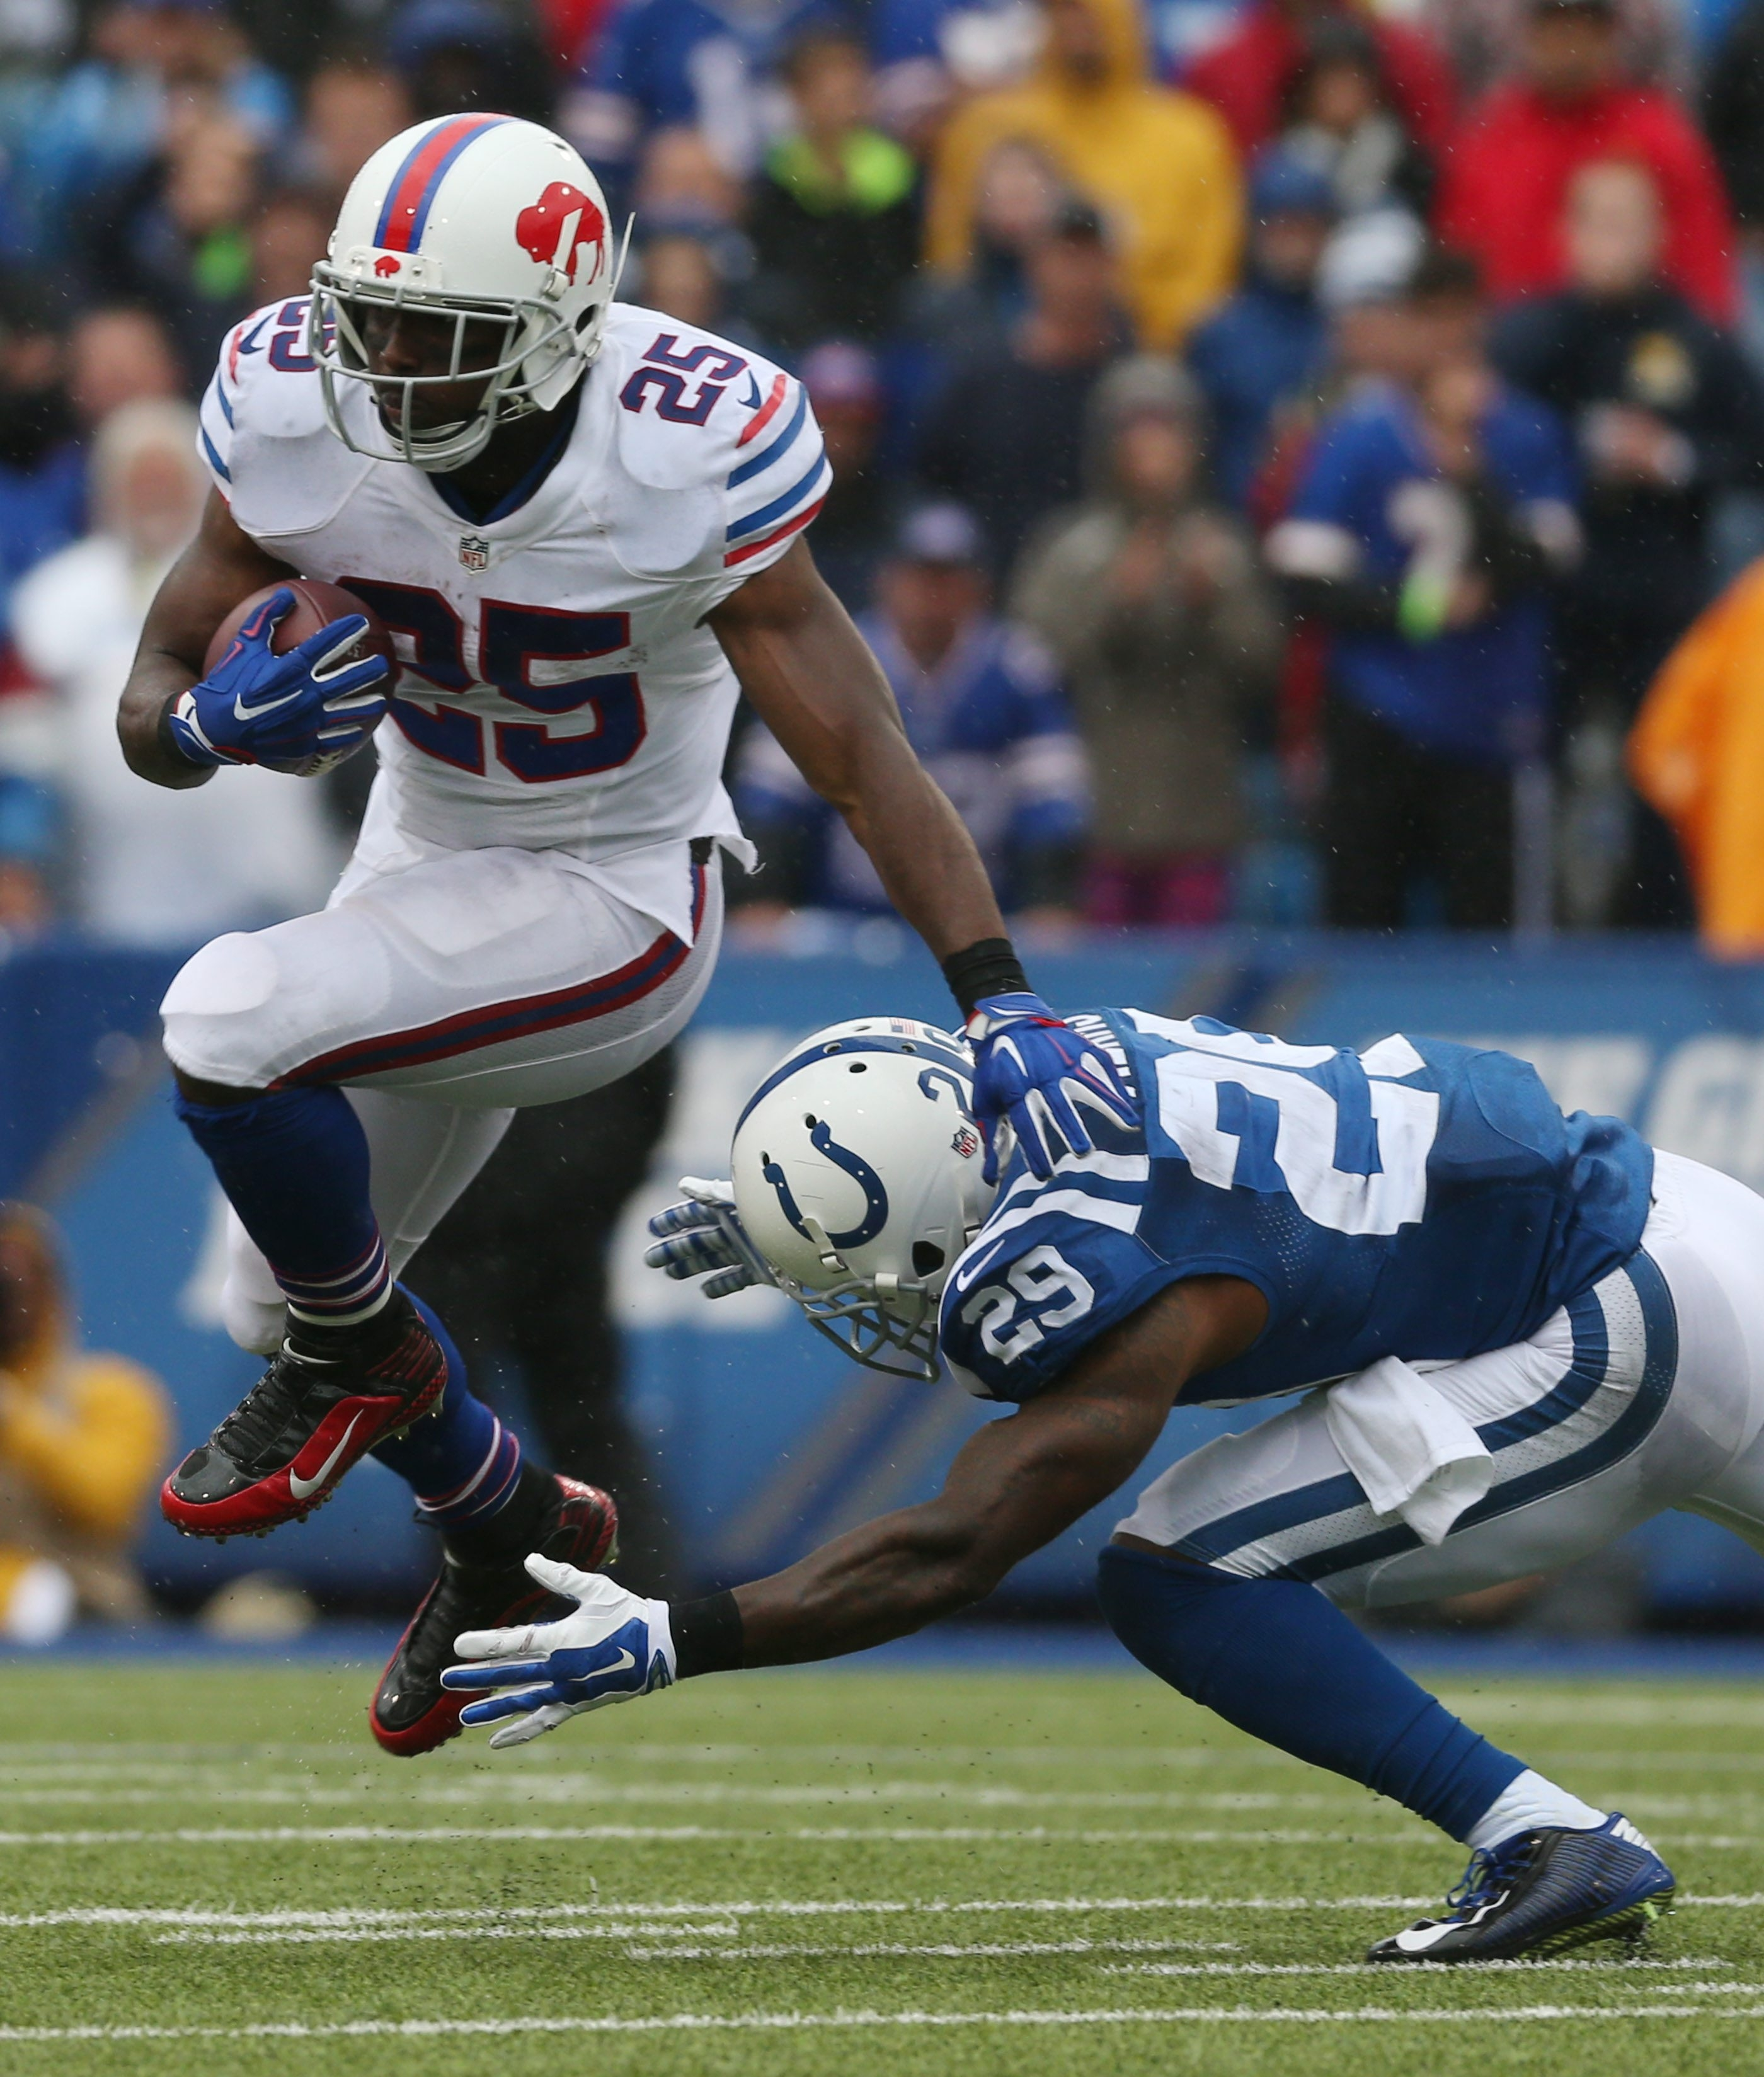 Bills running back LeSean McCoy had some trouble getting running room against the Colts on Sunday, and the fans noticed it.